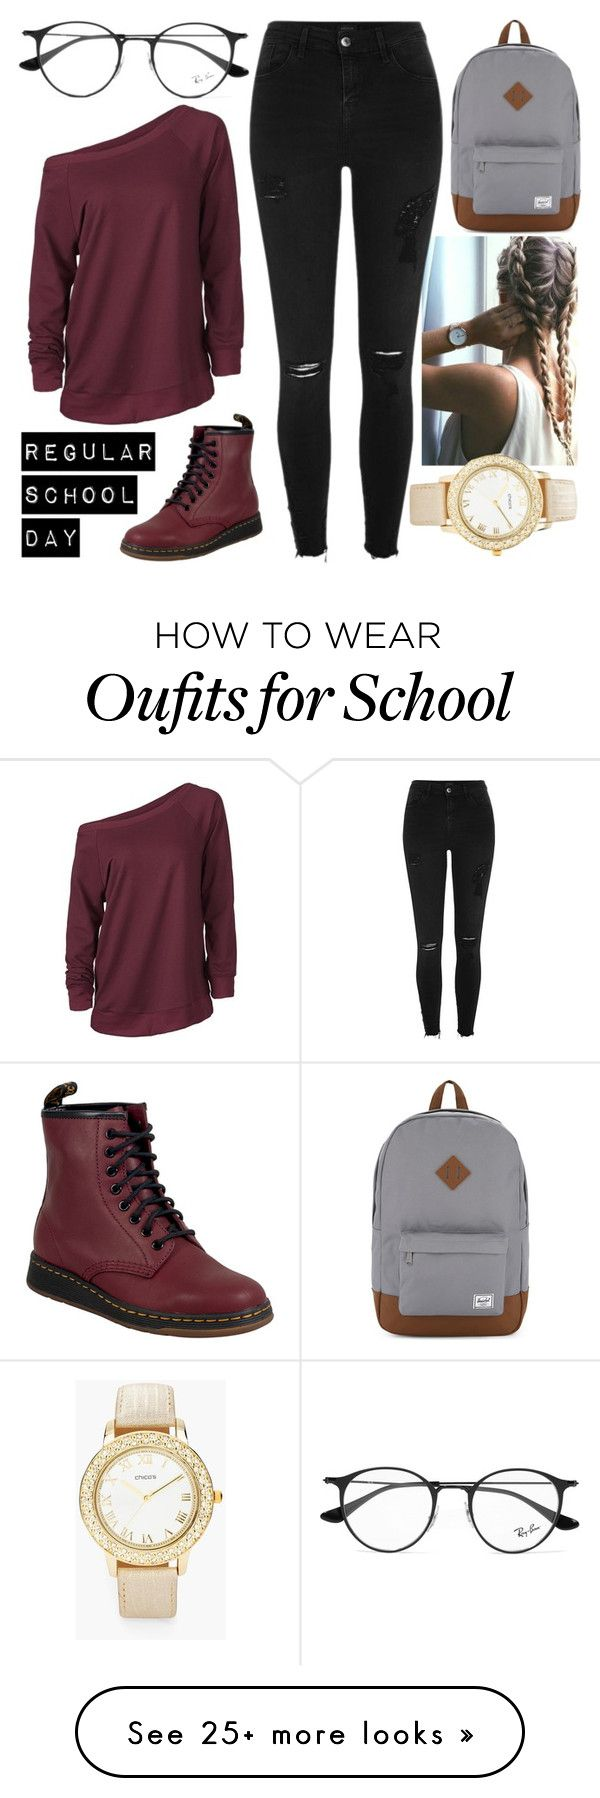 """Regular School Day"" by iouzzani on Polyvore featuring River Island, Herschel Supply Co., Ray-Ban, Dr. Martens and Chico's"